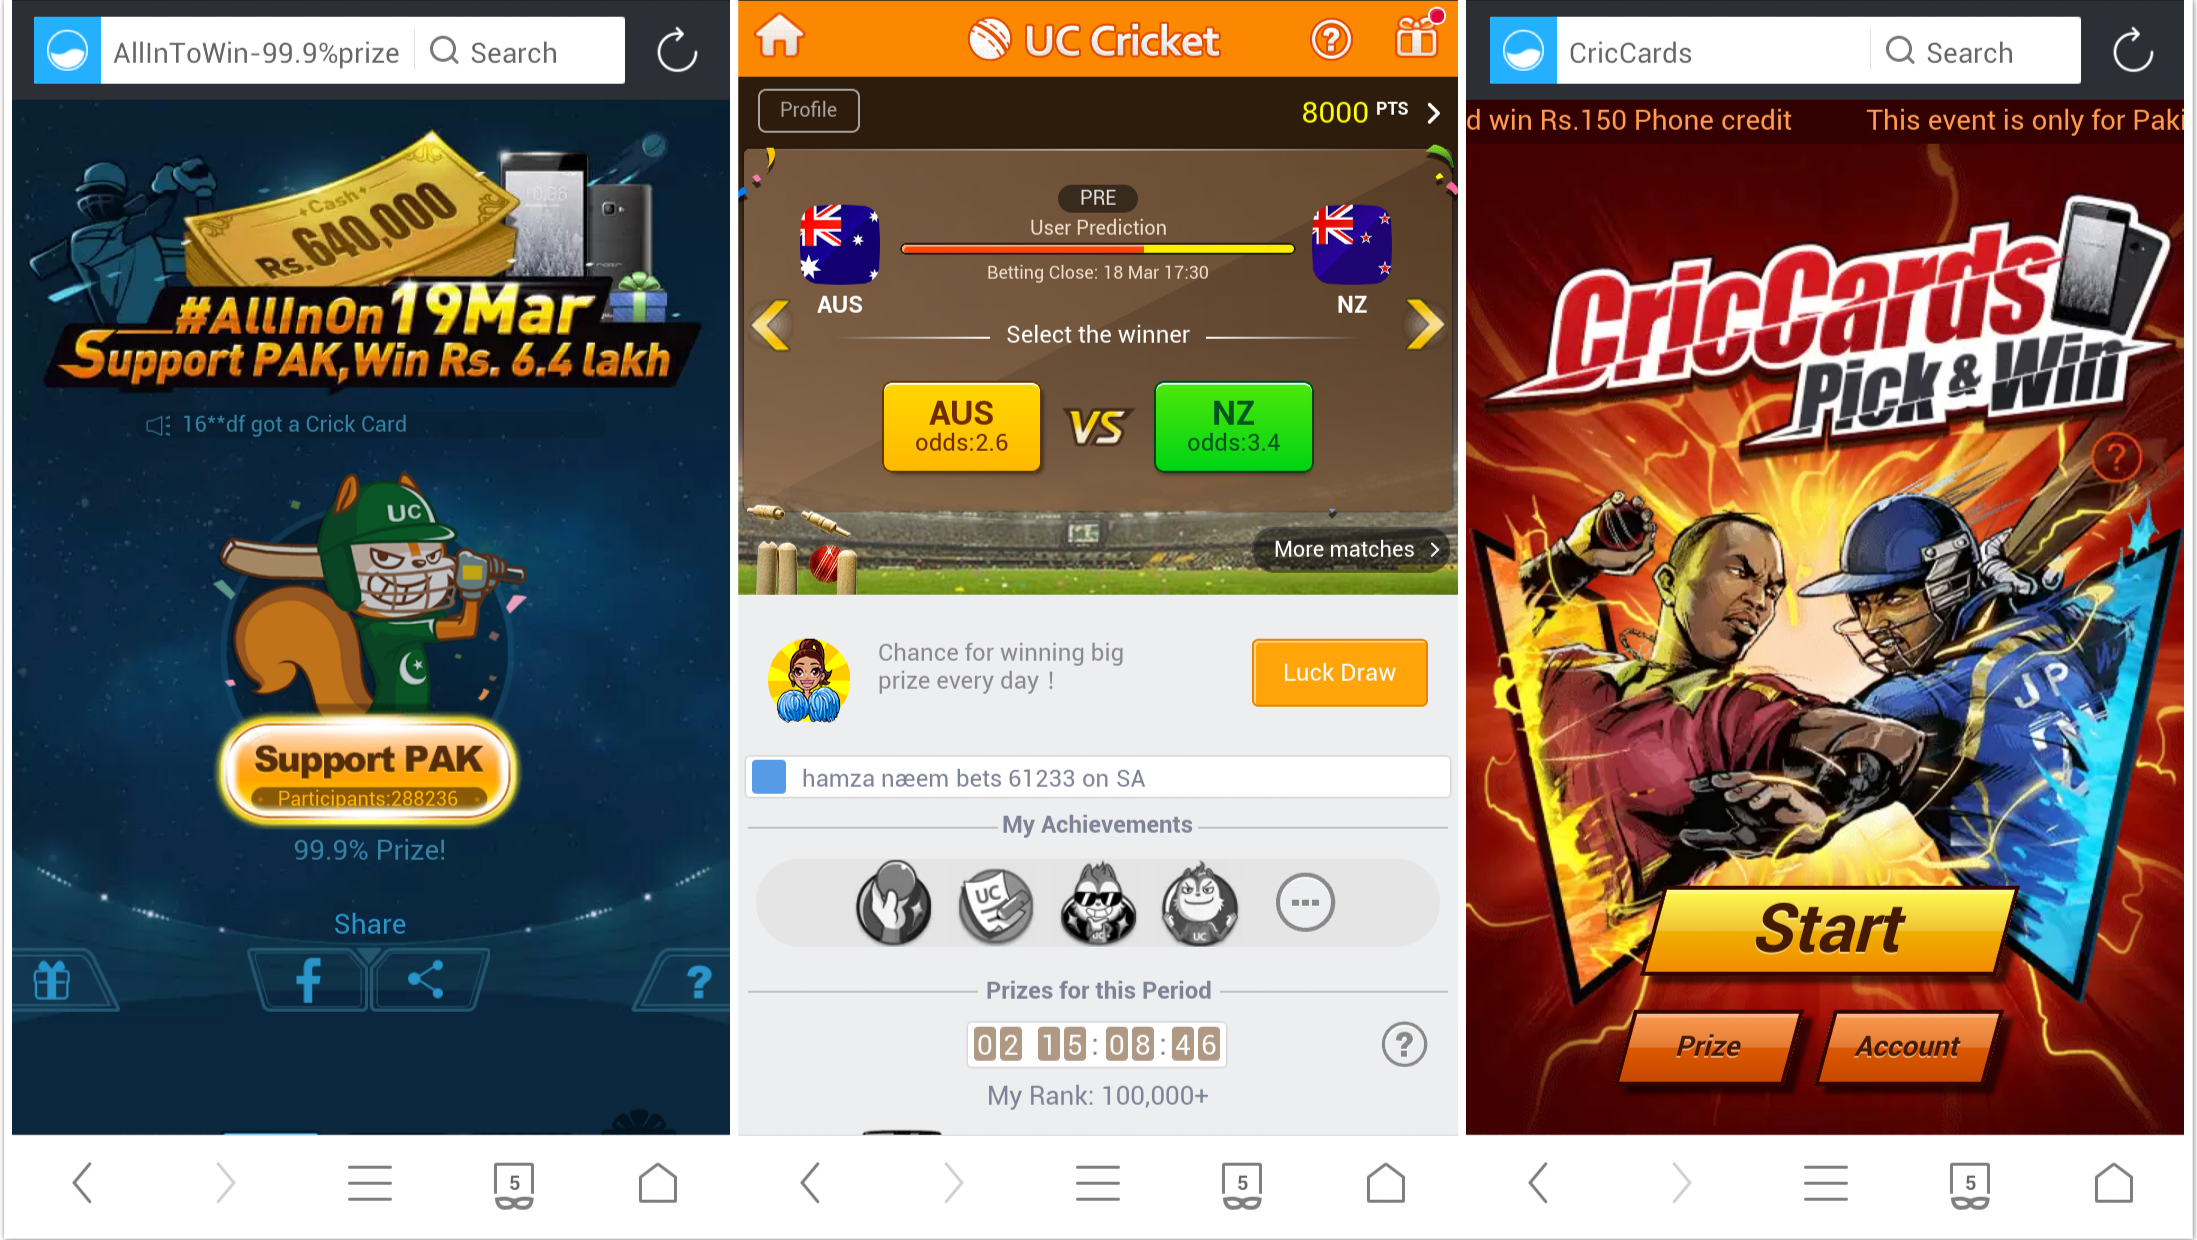 UC Browser launches 1st series of Cricket Themed Web Games for Pakistani users